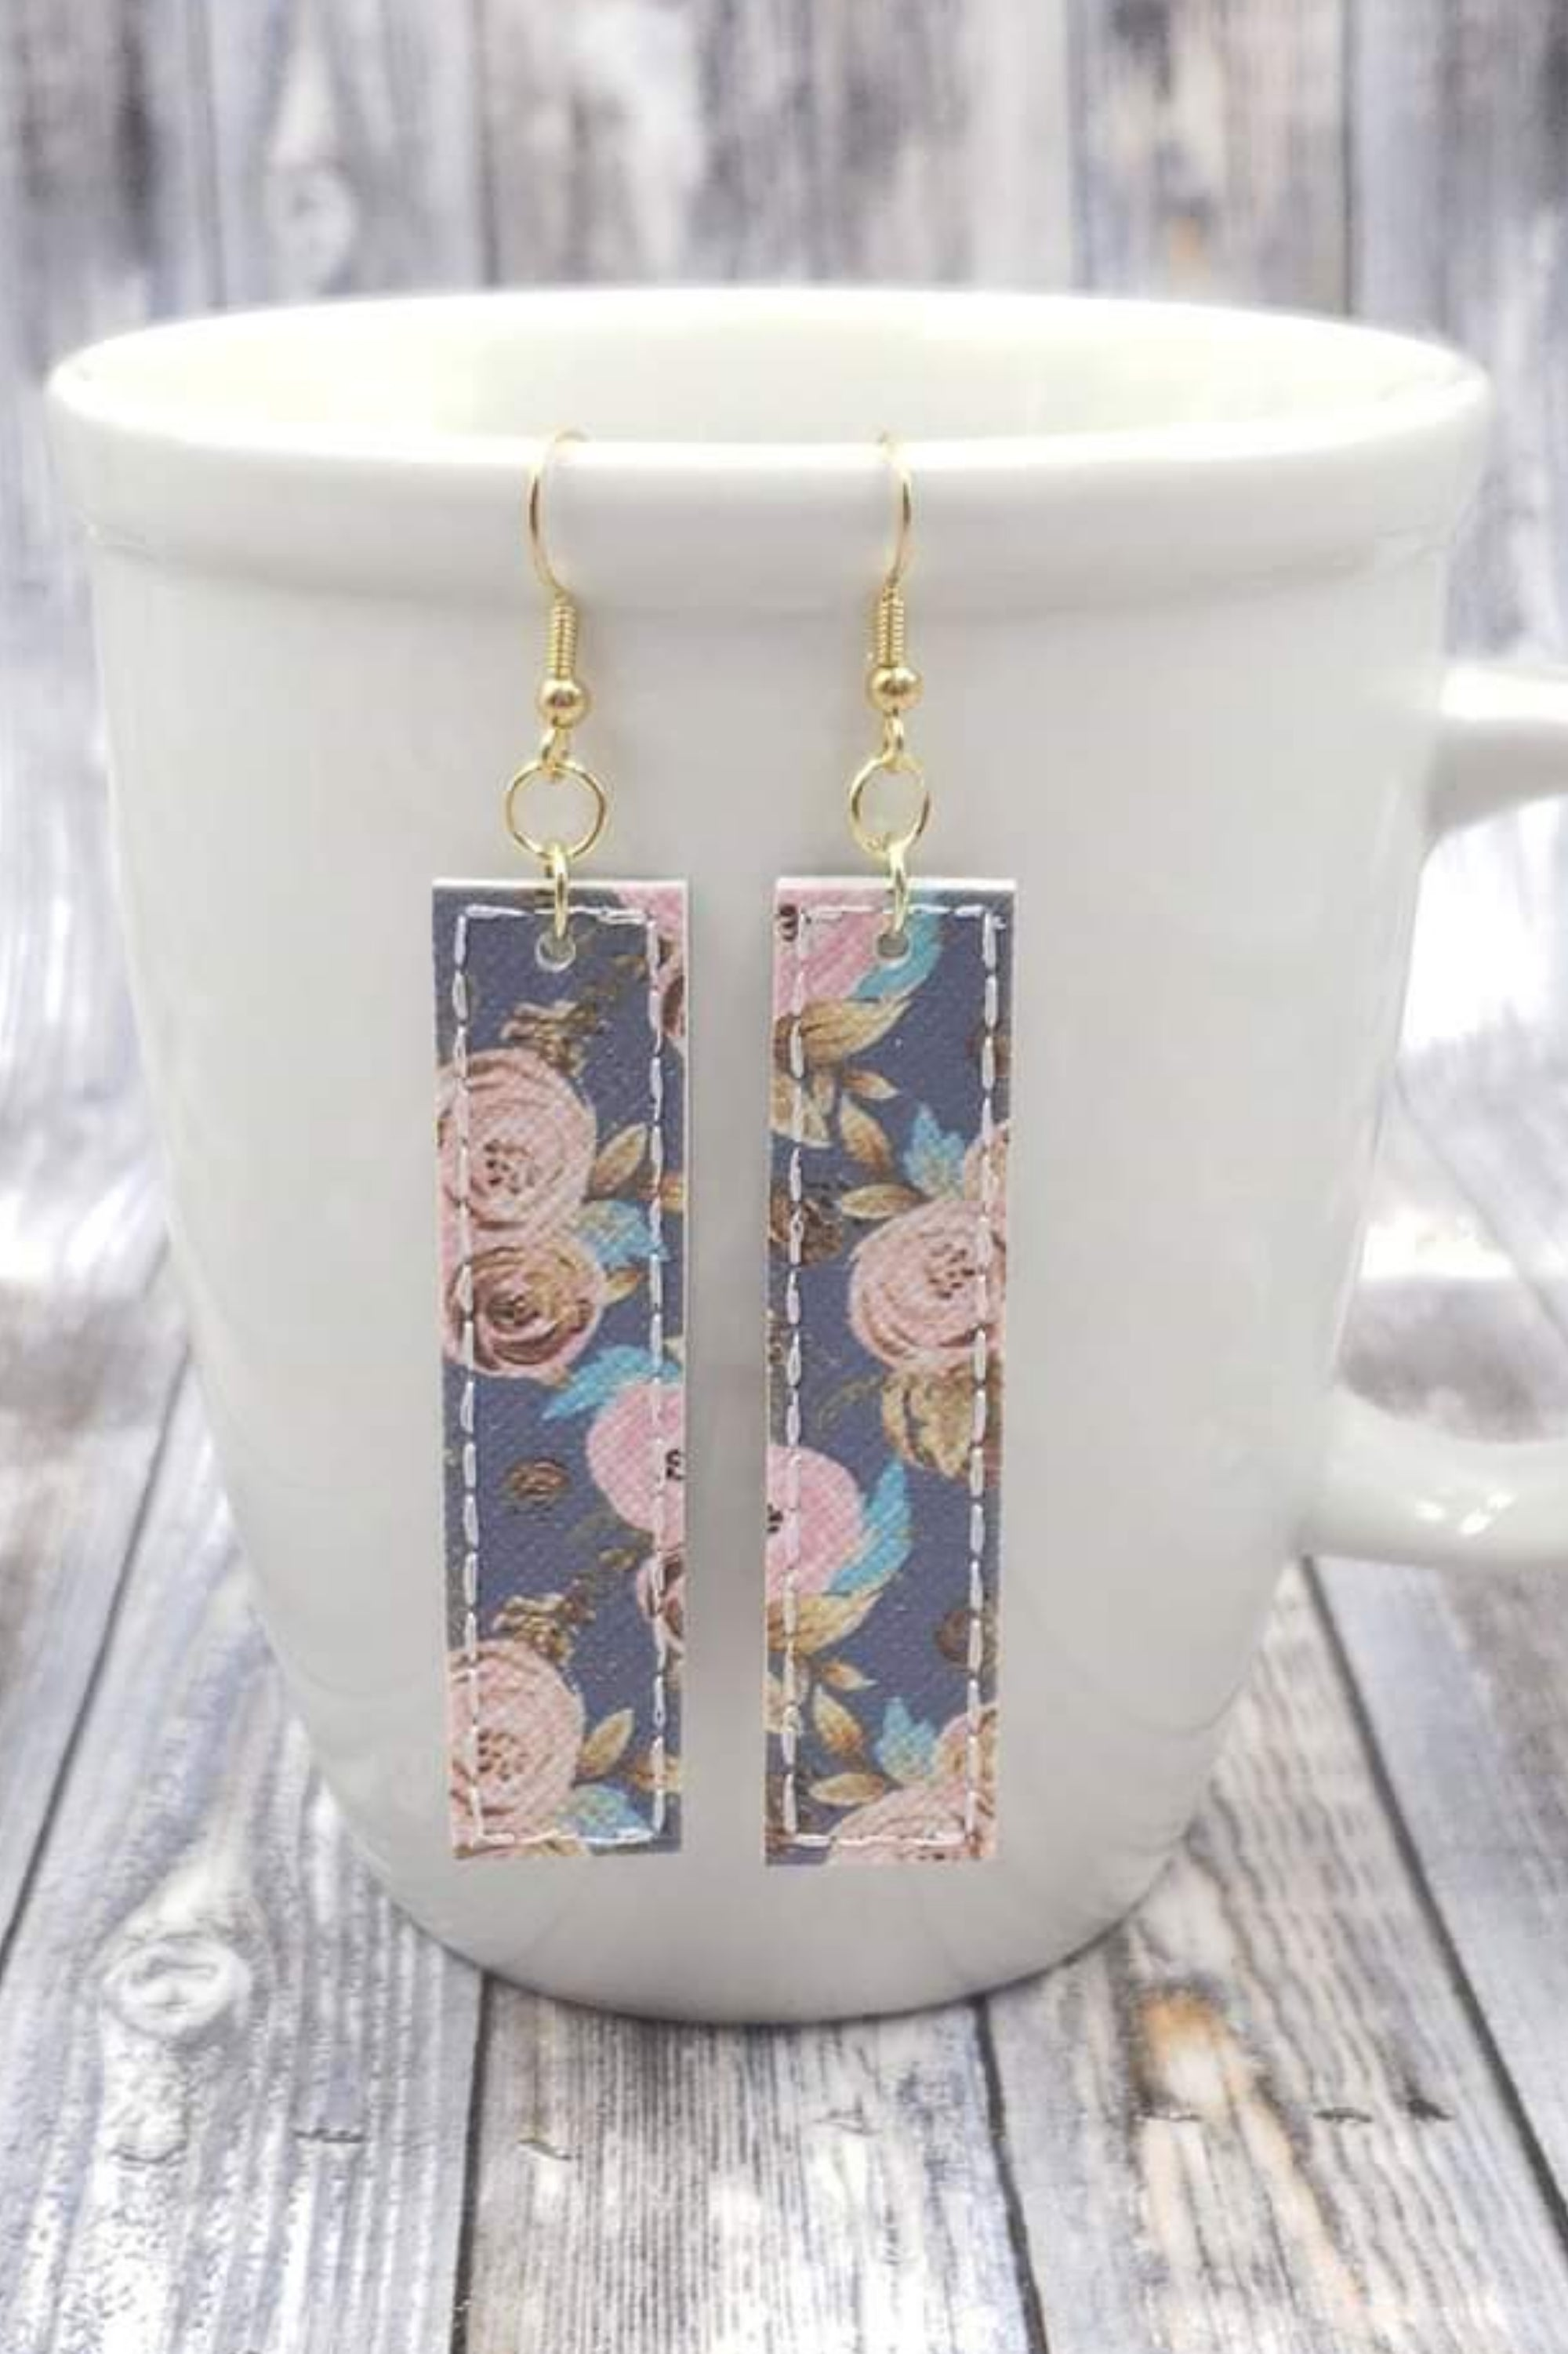 Floral Grey Blue Pink Bar Handcrafted22 Earrings B-219